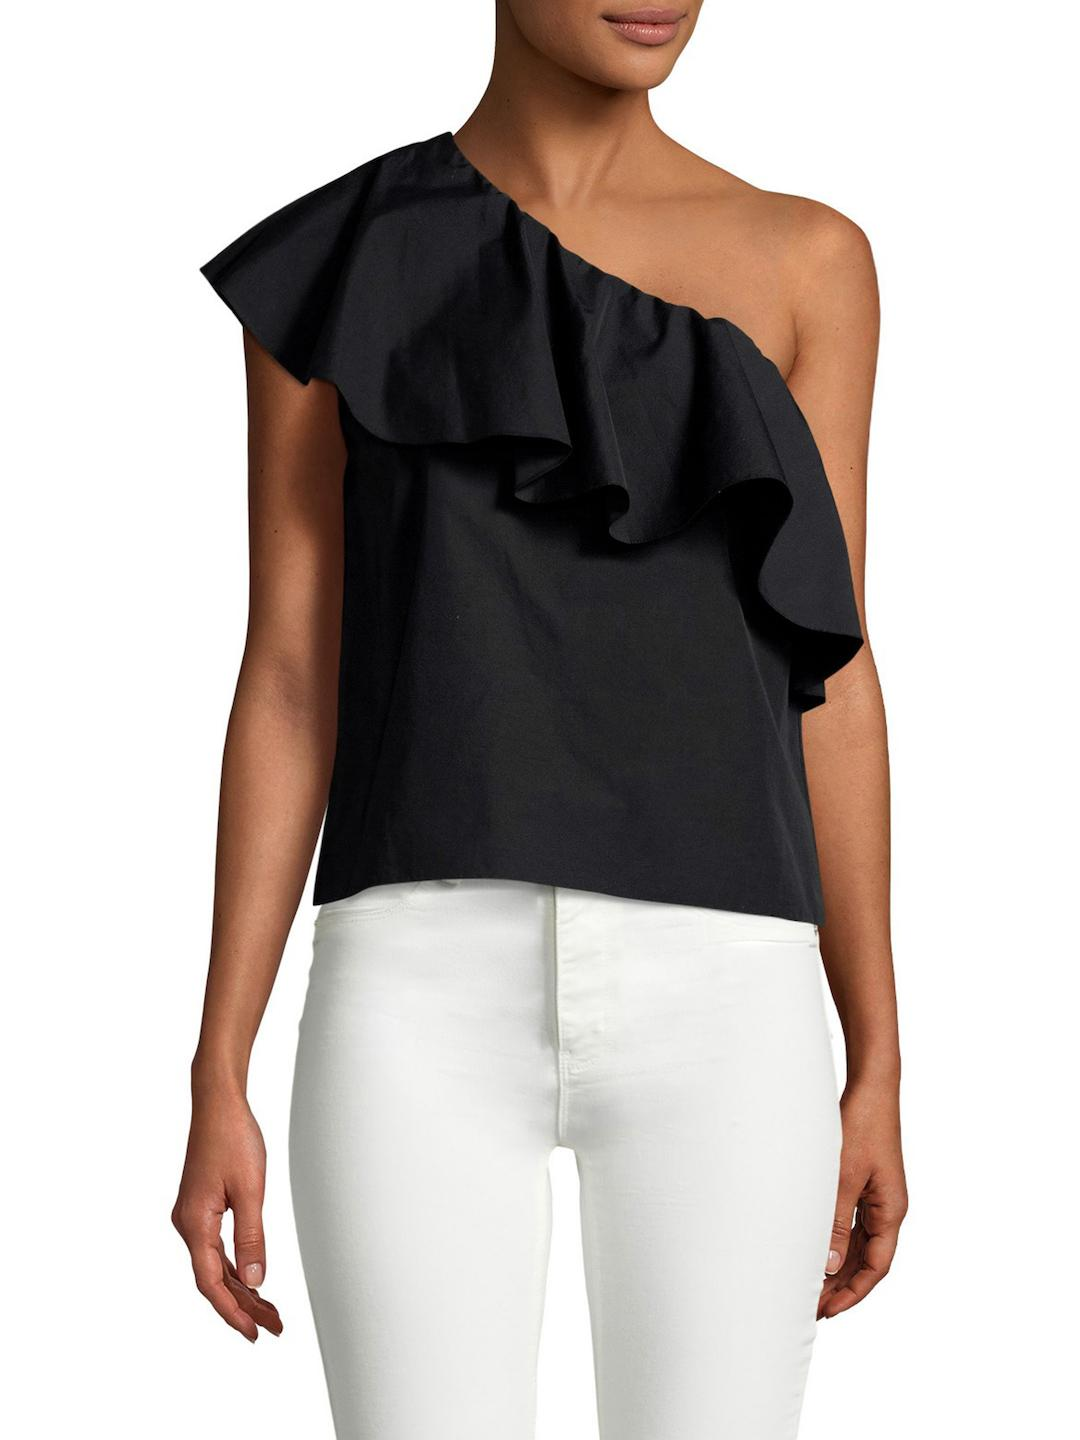 Alice+olivia Woman Calla One-shoulder Ruffled Cotton-poplin Top Black Size S Alice & Olivia Big Discount Sale Online Free Shipping Release Dates Buy Cheap Hot Sale Best Buy Buy Cheap Pre Order mw18xb